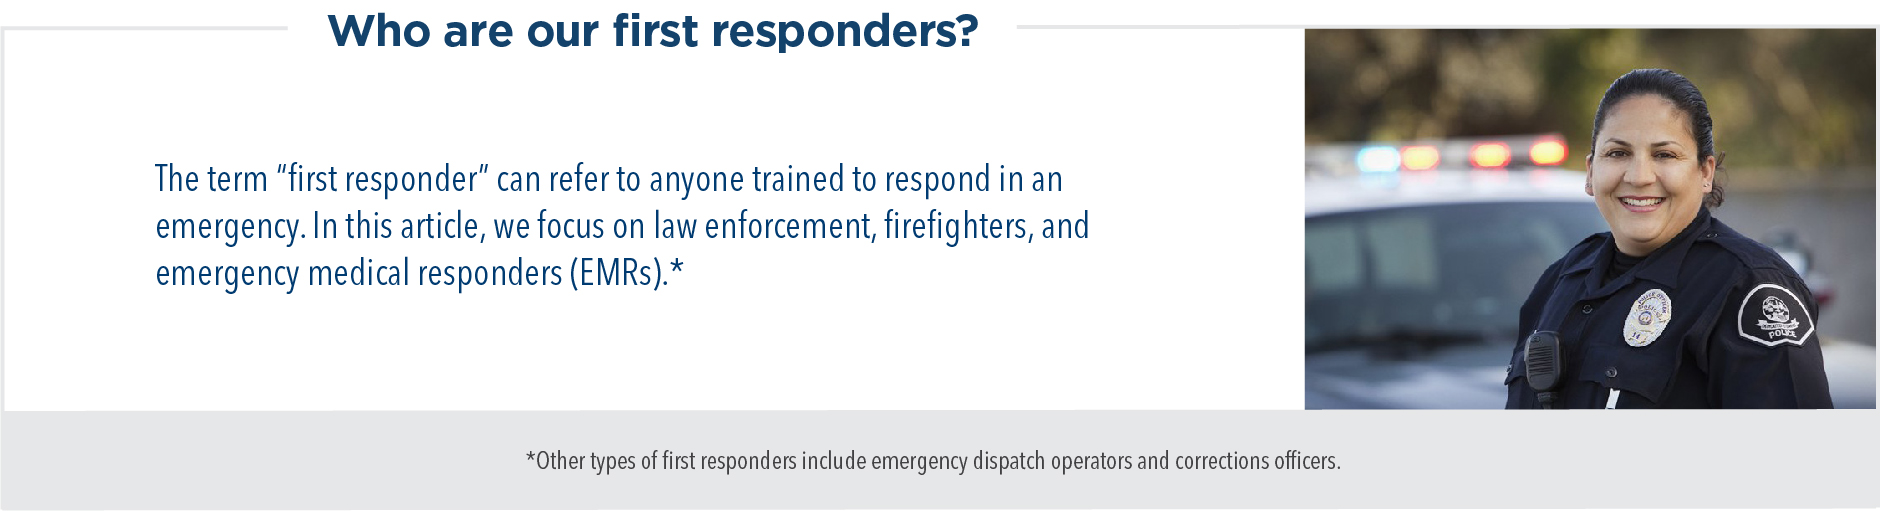 """Who are our first responders? The term """"first responder"""" can refer to anyone trained to respond in an emergency. In this article, we focus on law enforcement, firefighters, and emergency medical responders (EMRs)."""